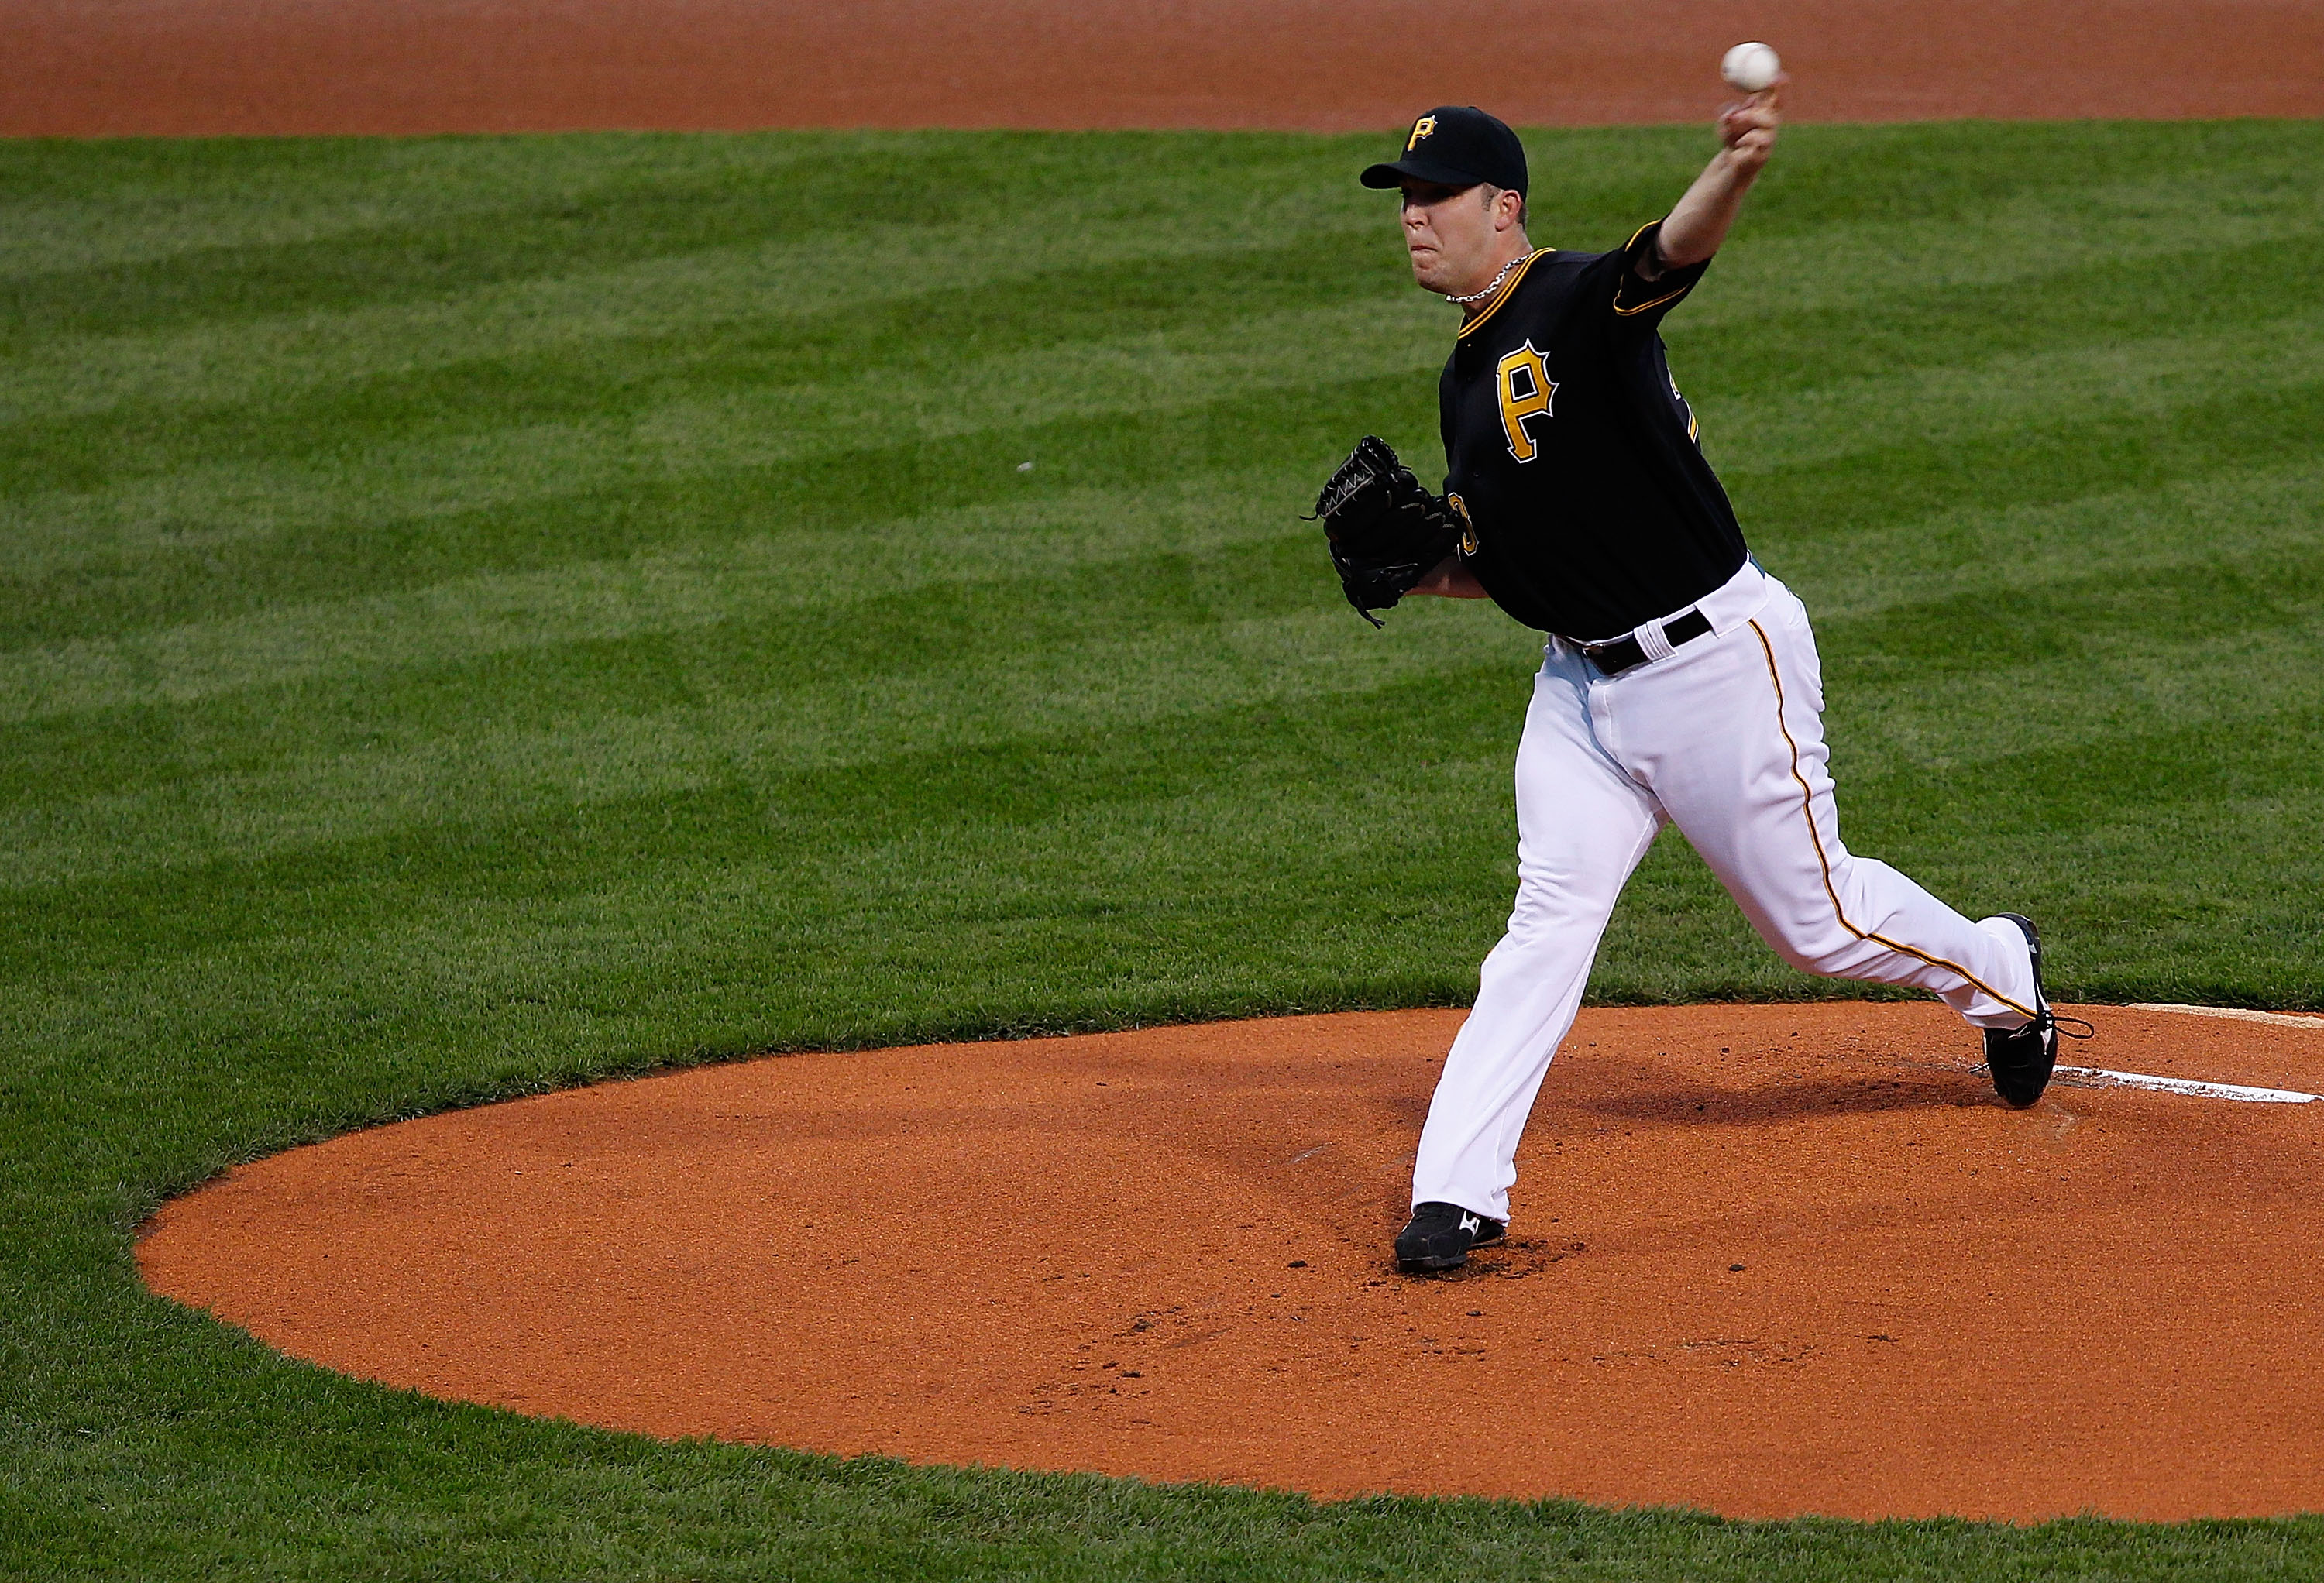 PITTSBURGH - SEPTEMBER 21:  Paul Maholm #28 of the Pittsburgh Pirates pitches against the St. Louis Cardinals during the game on September 21, 2010 at PNC Park in Pittsburgh, Pennsylvania.  (Photo by Jared Wickerham/Getty Images)